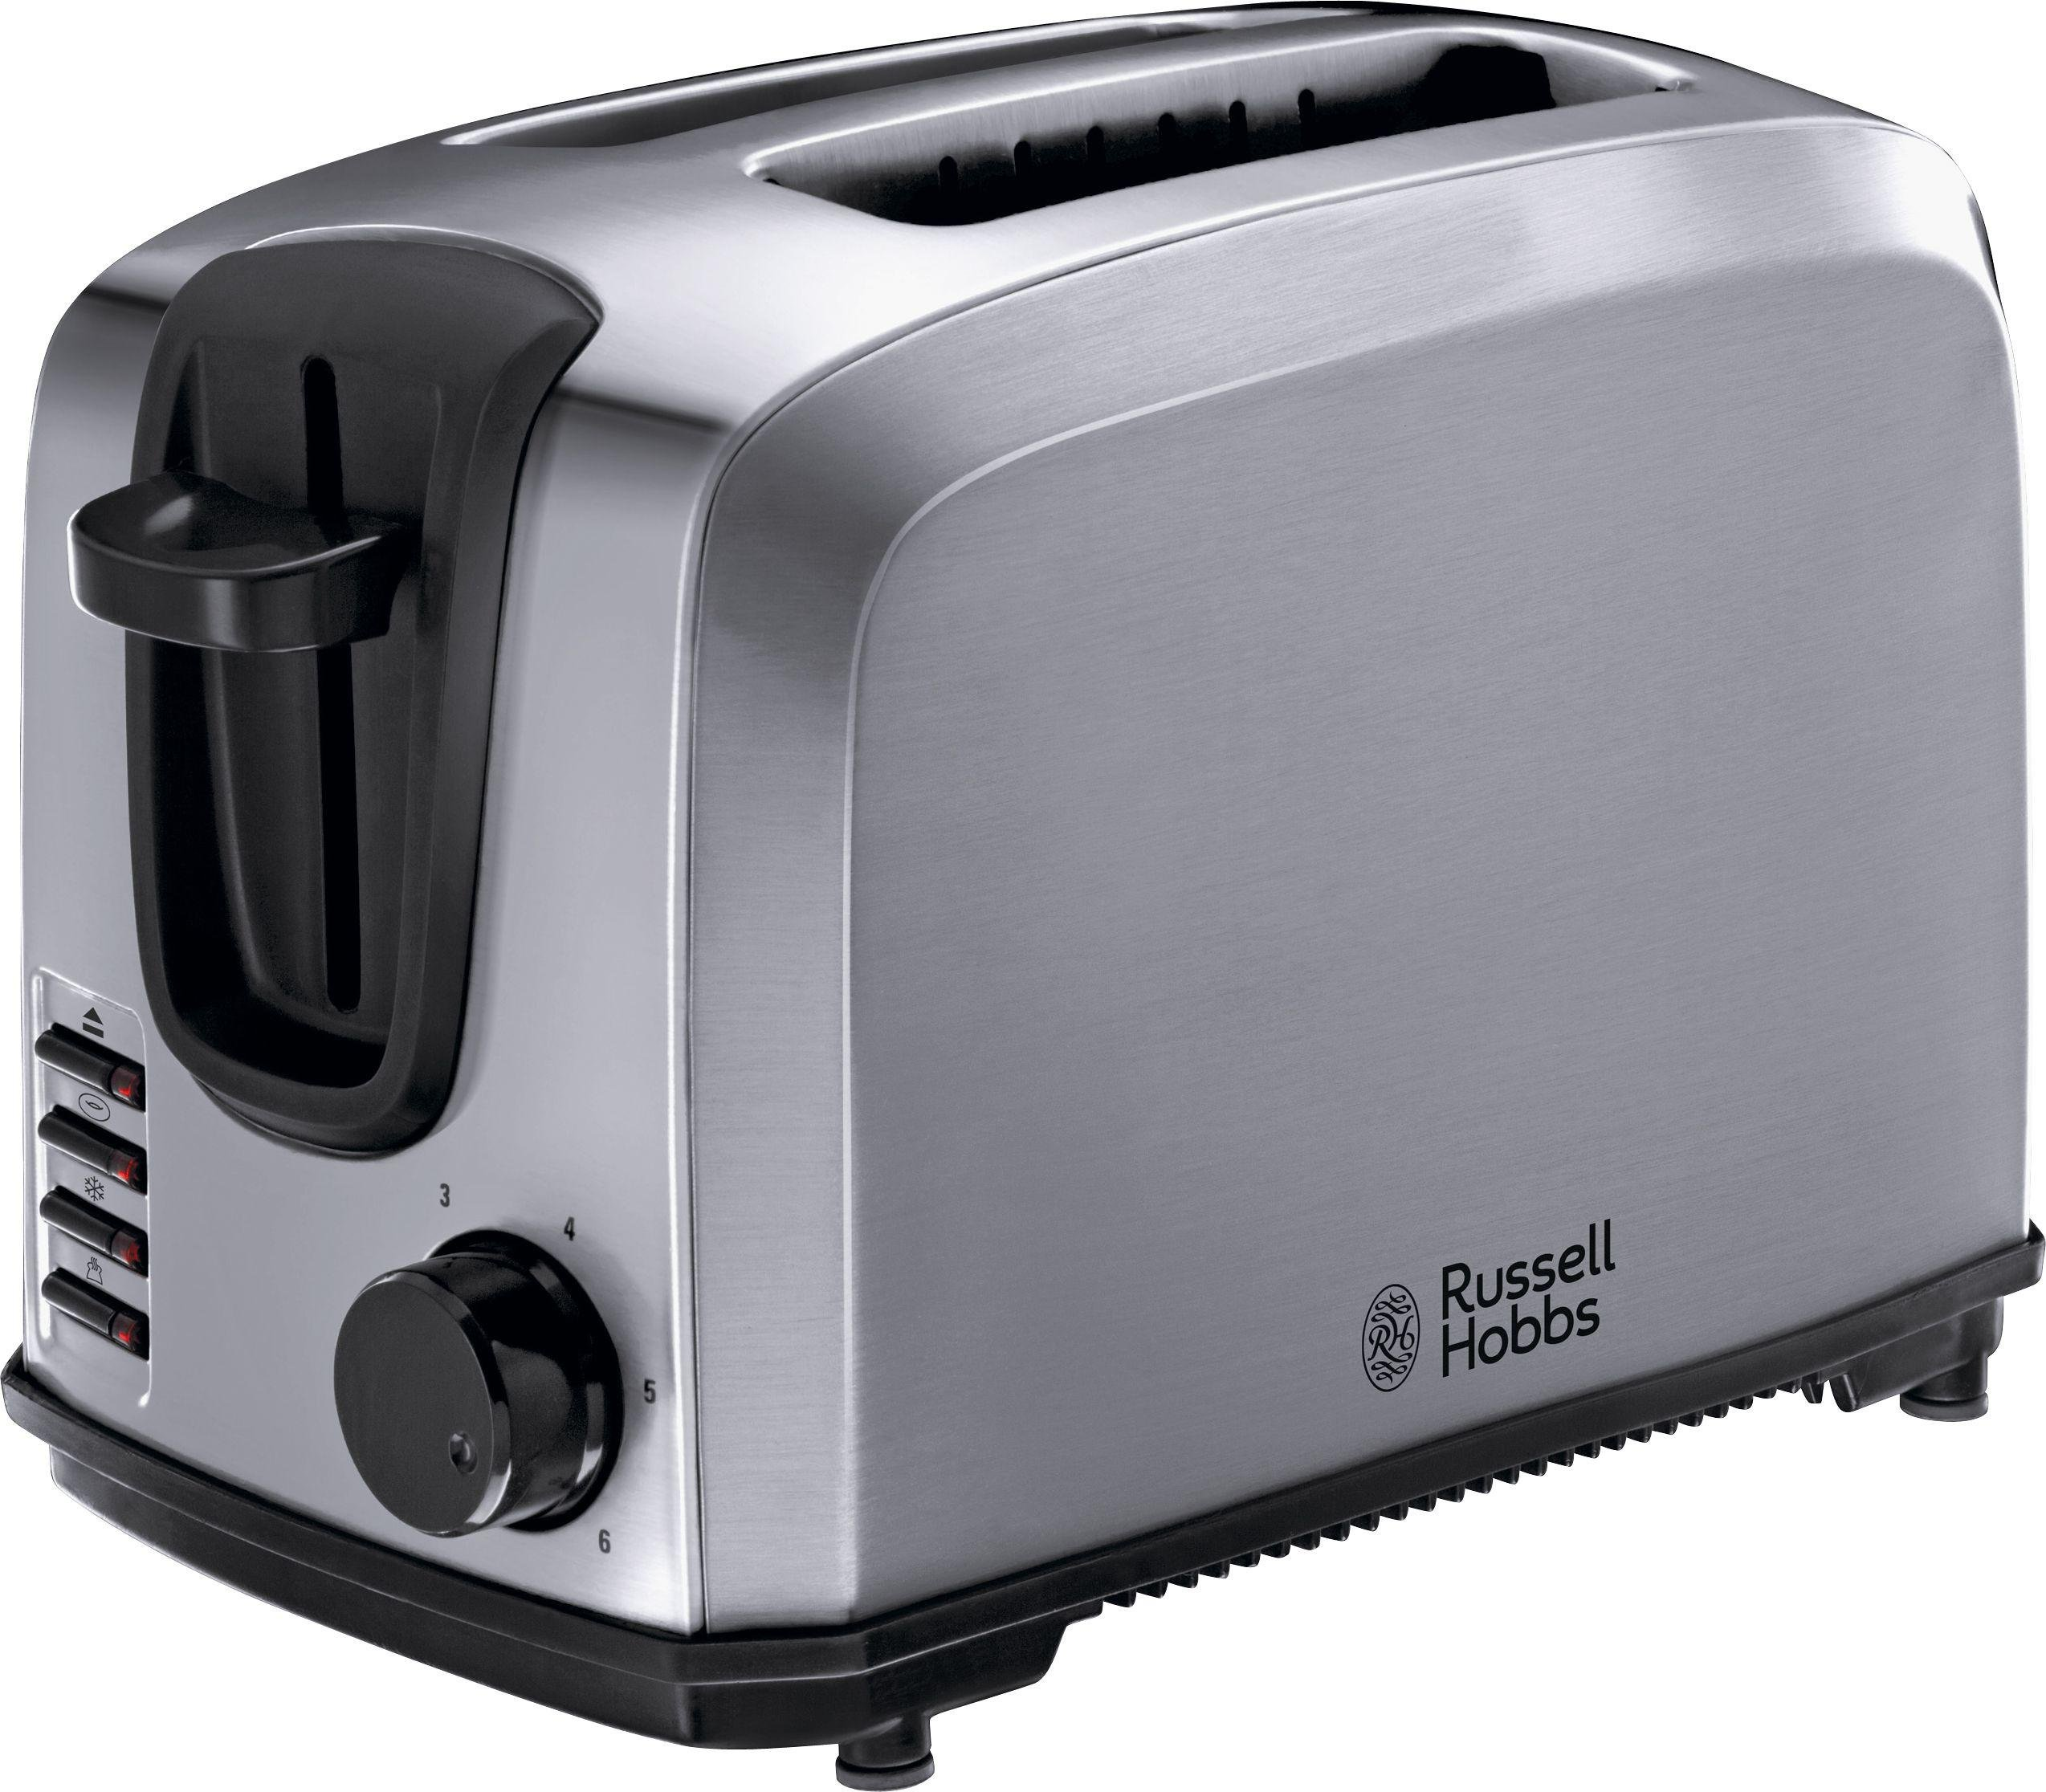 Russell Hobbs – Toaster – 20880 Compact – 2 Slice-Stainless Steel